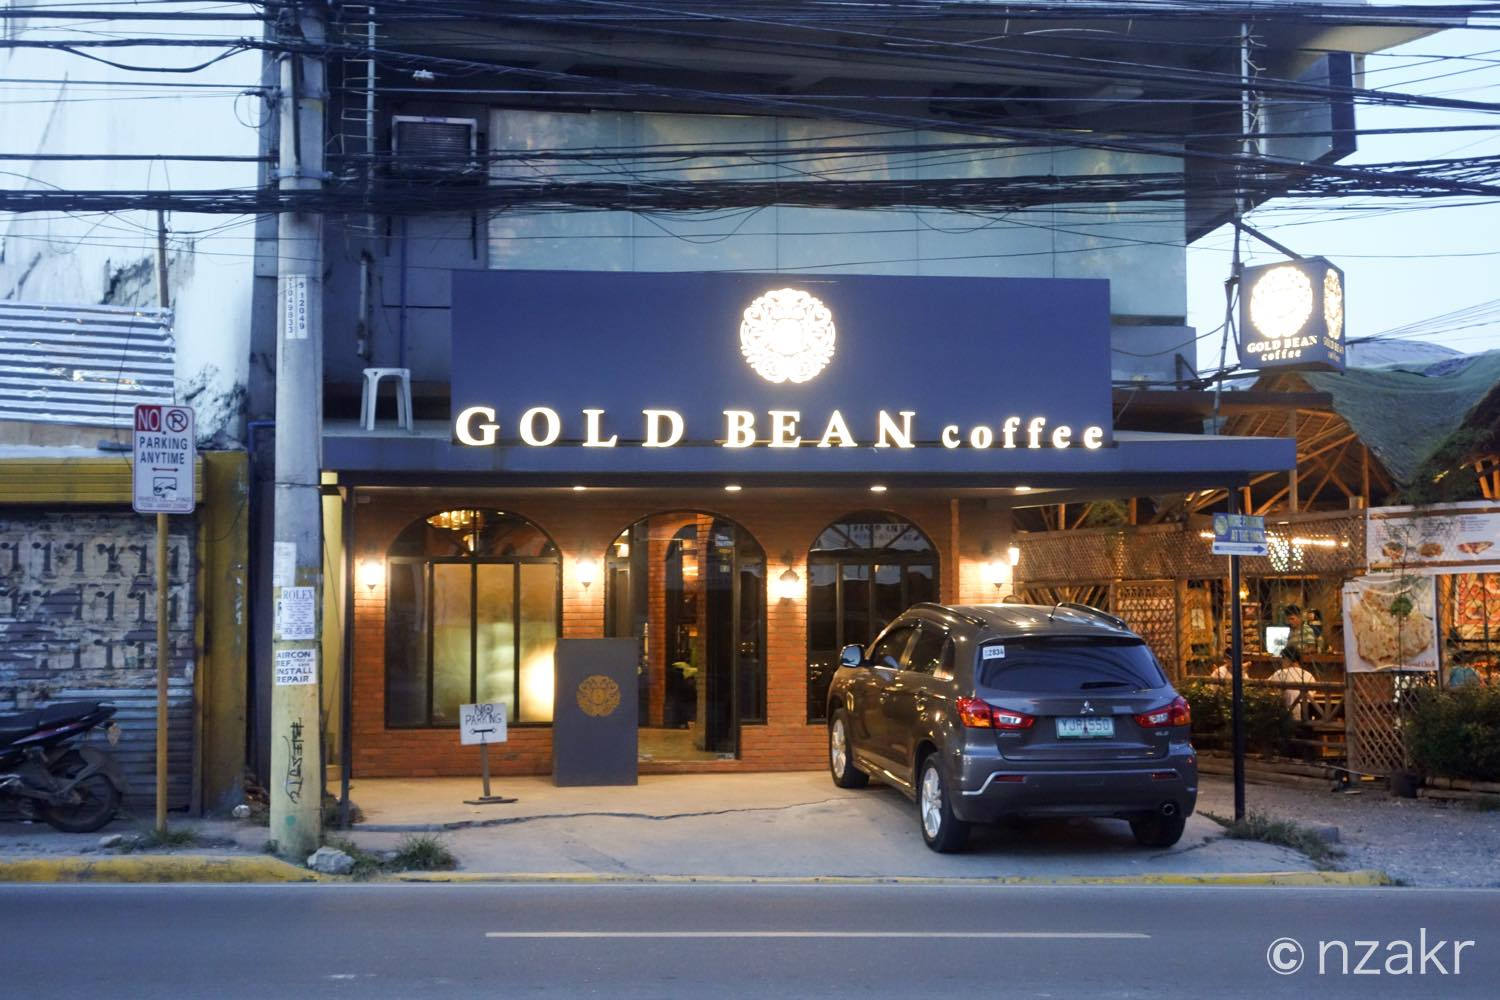 GOLD BEAN coffeeの外観